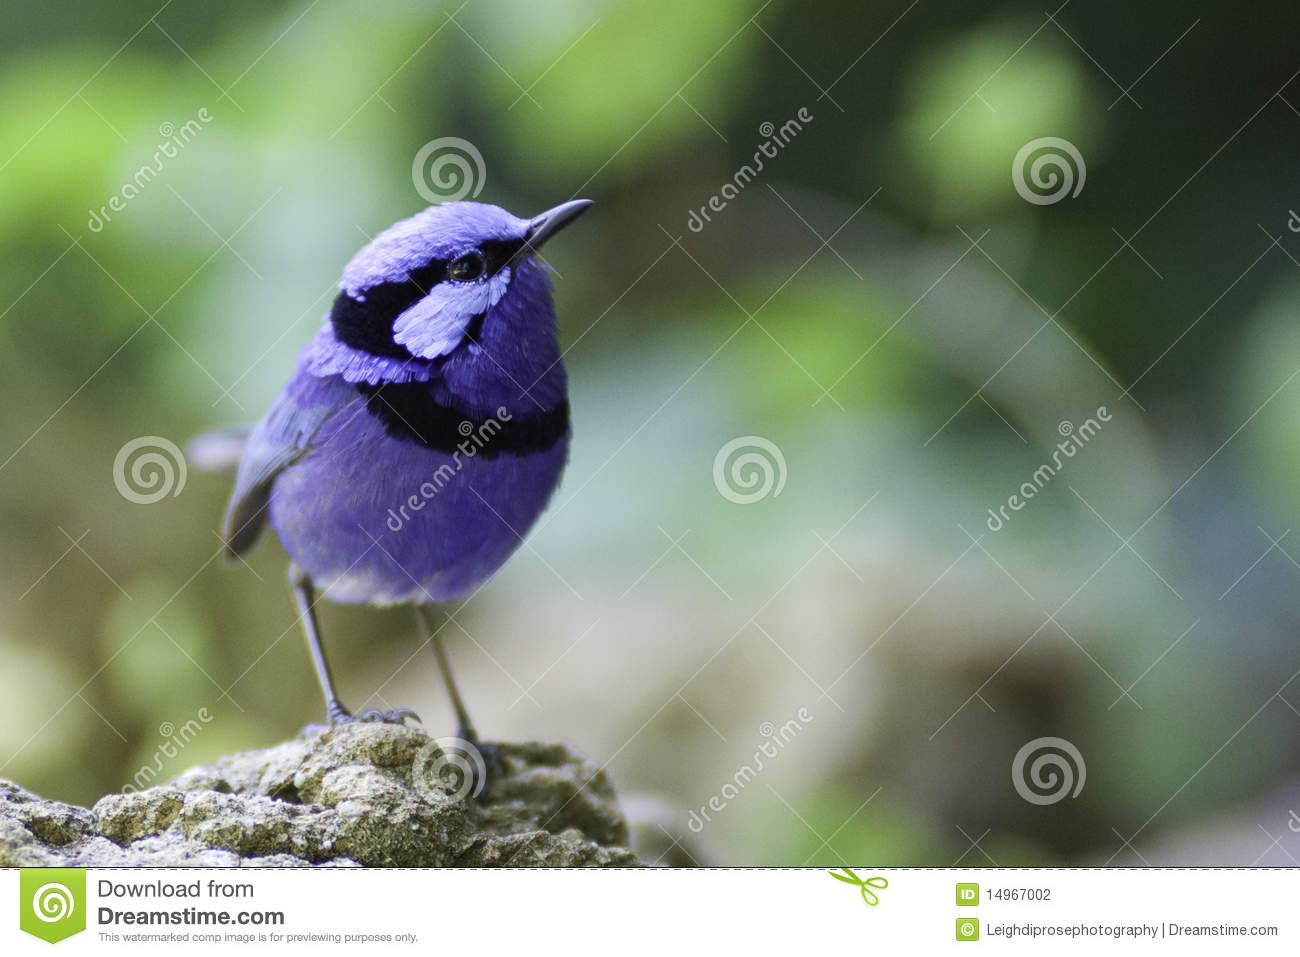 Superb Fairywren clipart #2, Download drawings